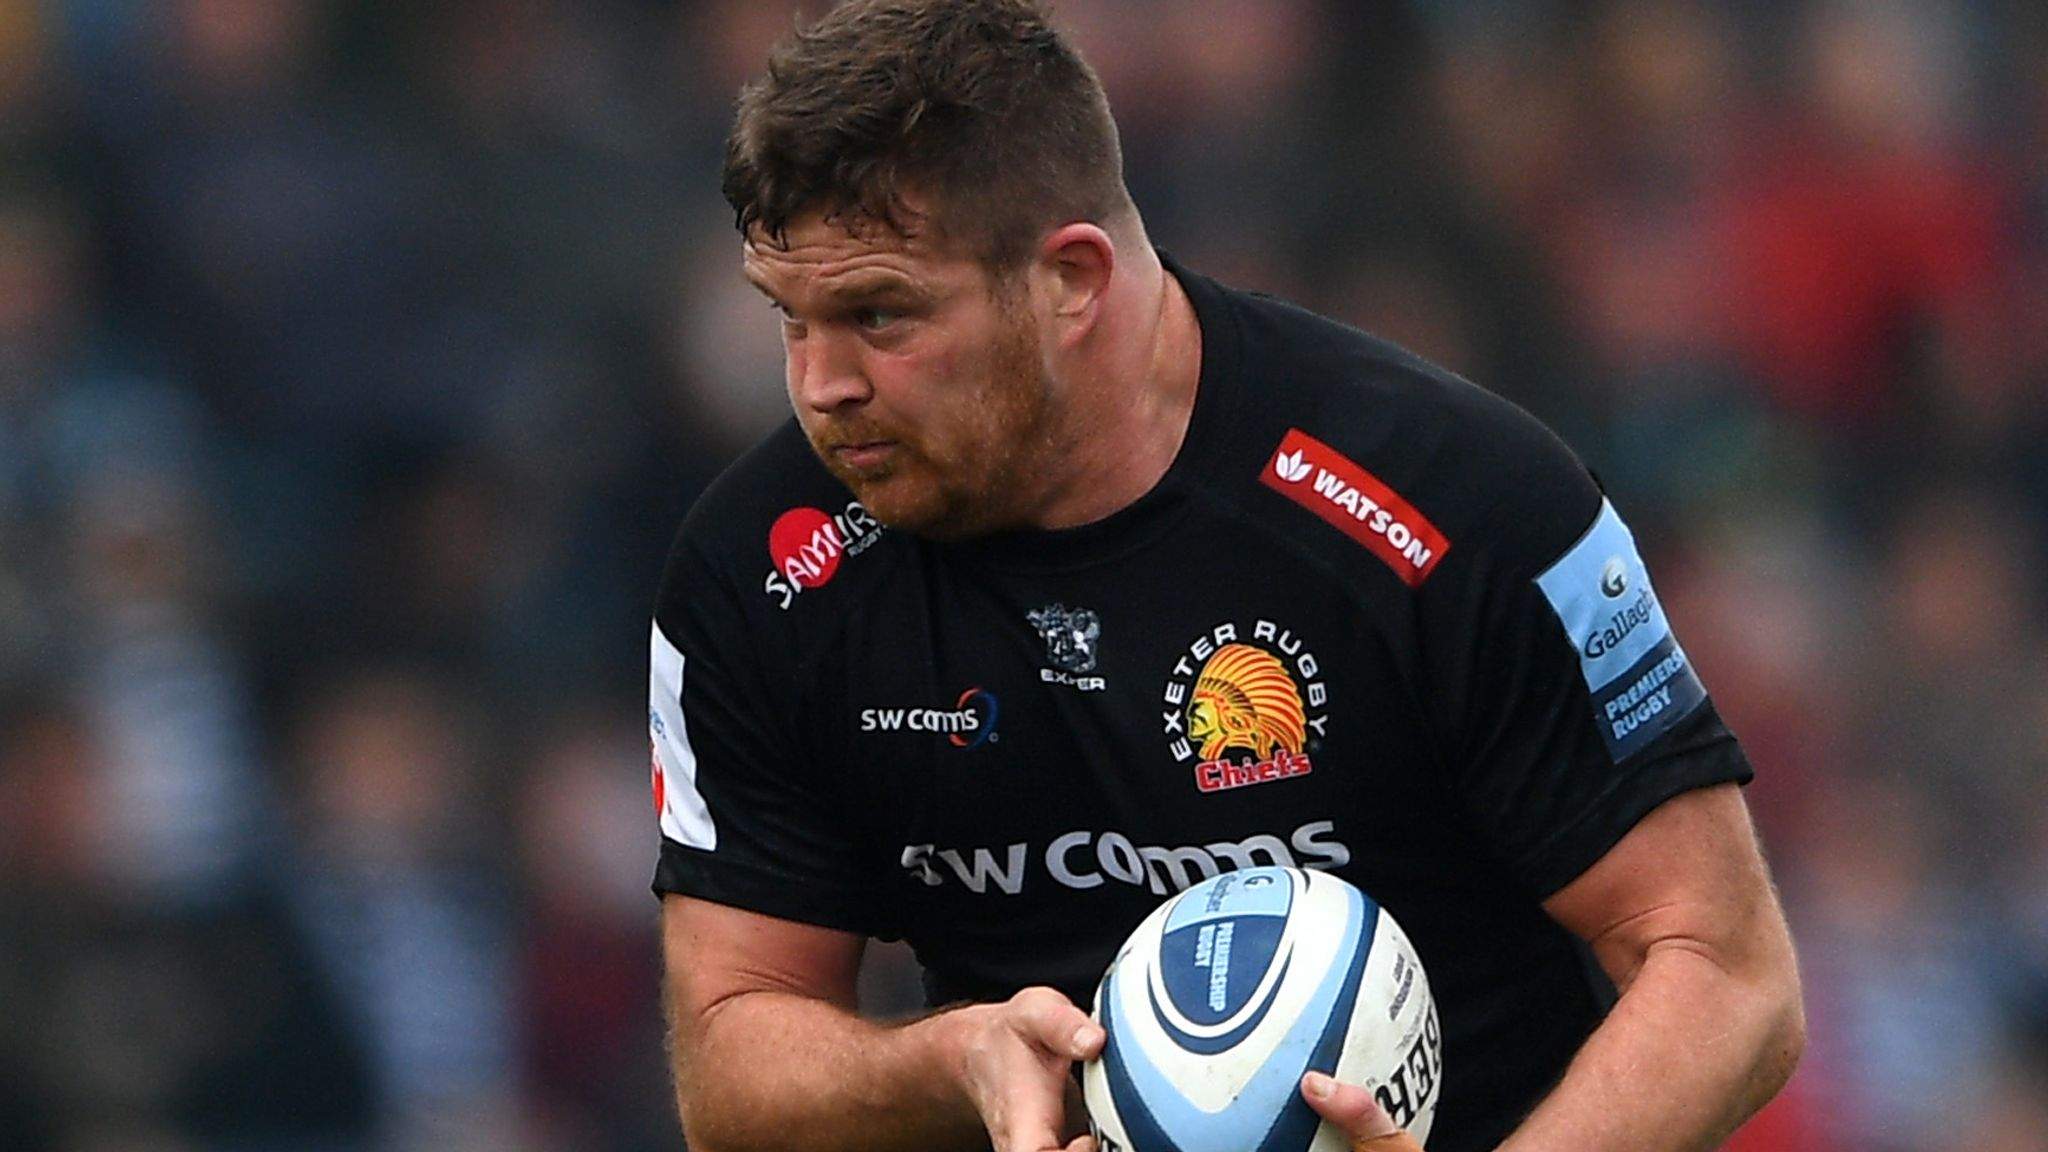 Greg Holmes Leaving Exeter Chiefs For Short Term Stint With Western Force Rugby Union News Sky Sports